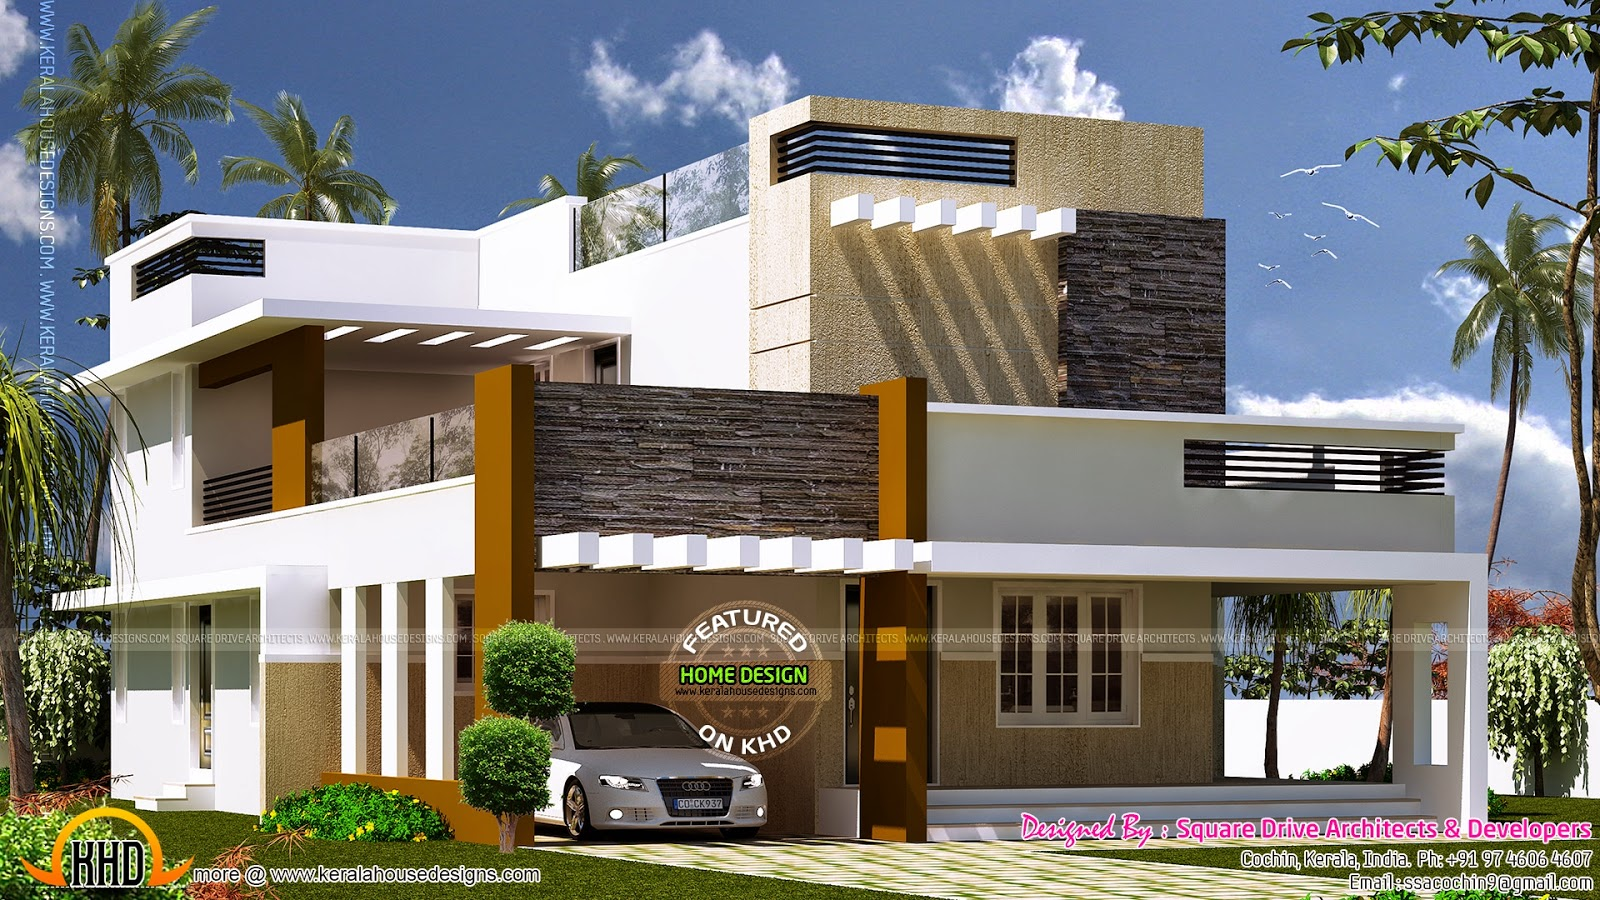 December 2014 kerala home design and floor plans Home design ideas photos architecture